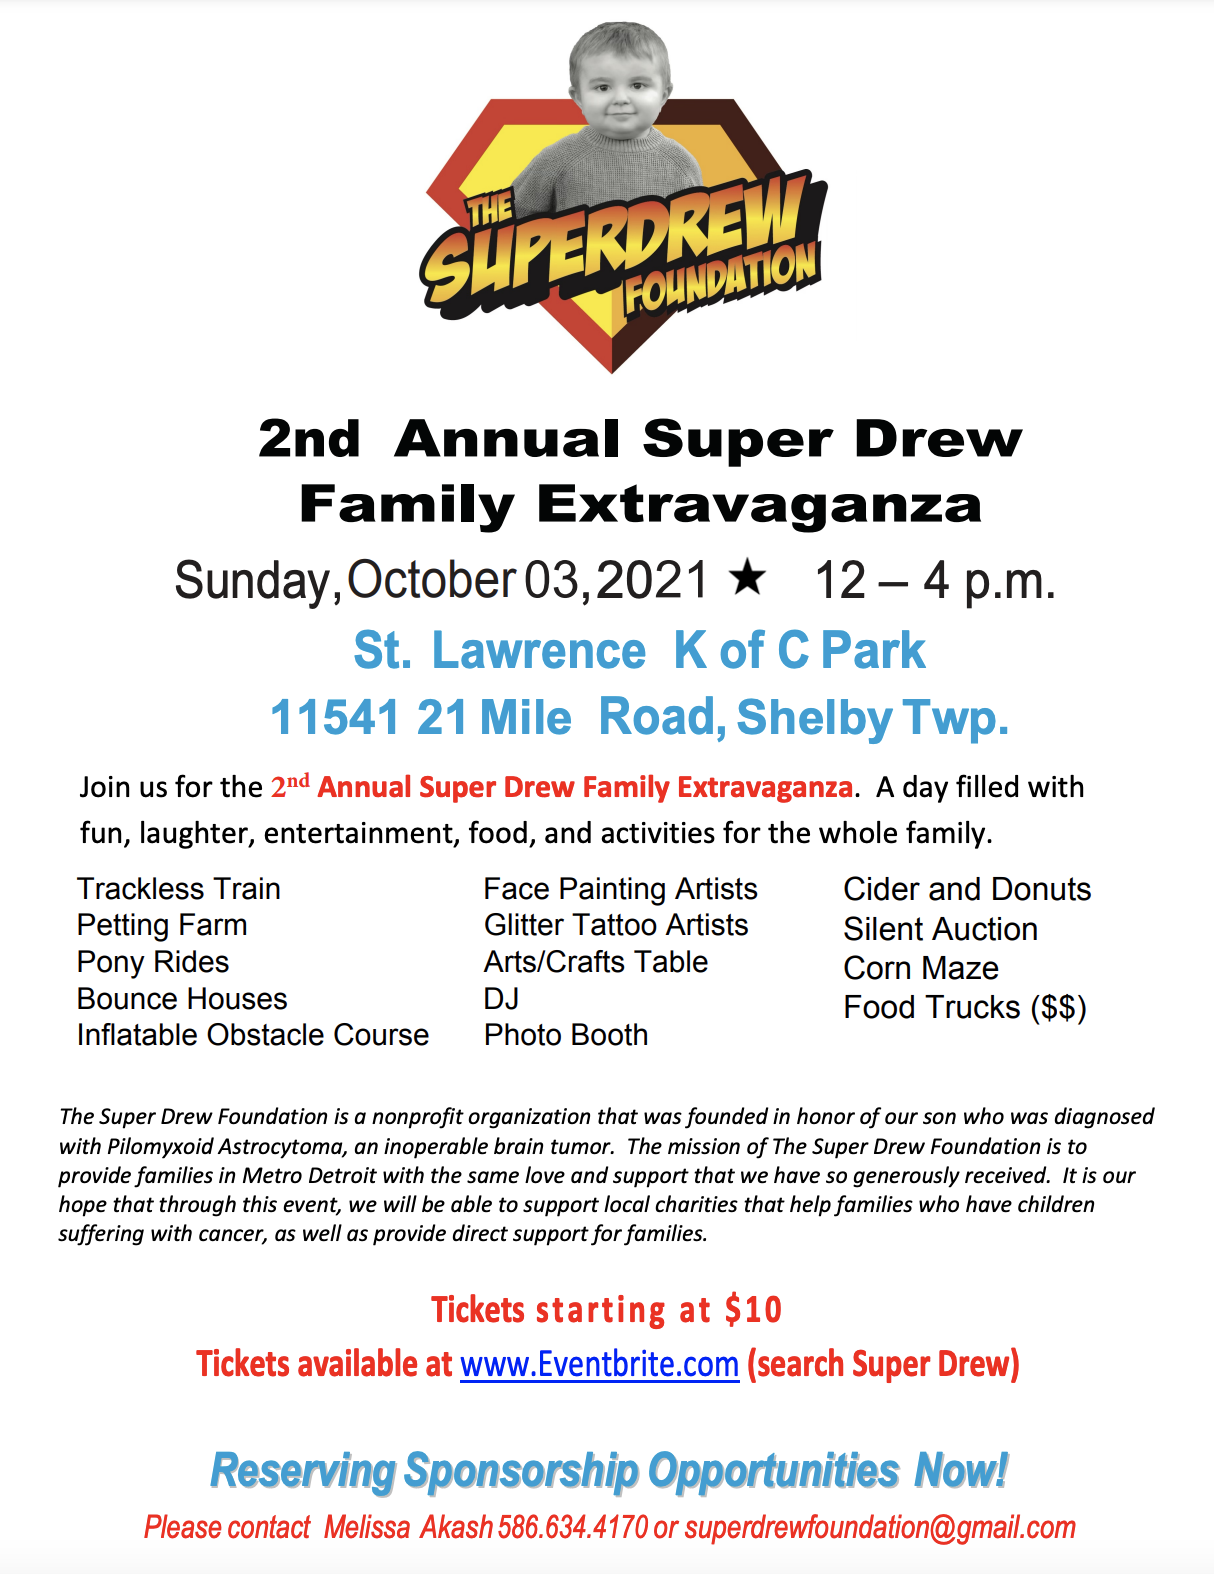 2nd Annual Super Drew Family Extravaganza